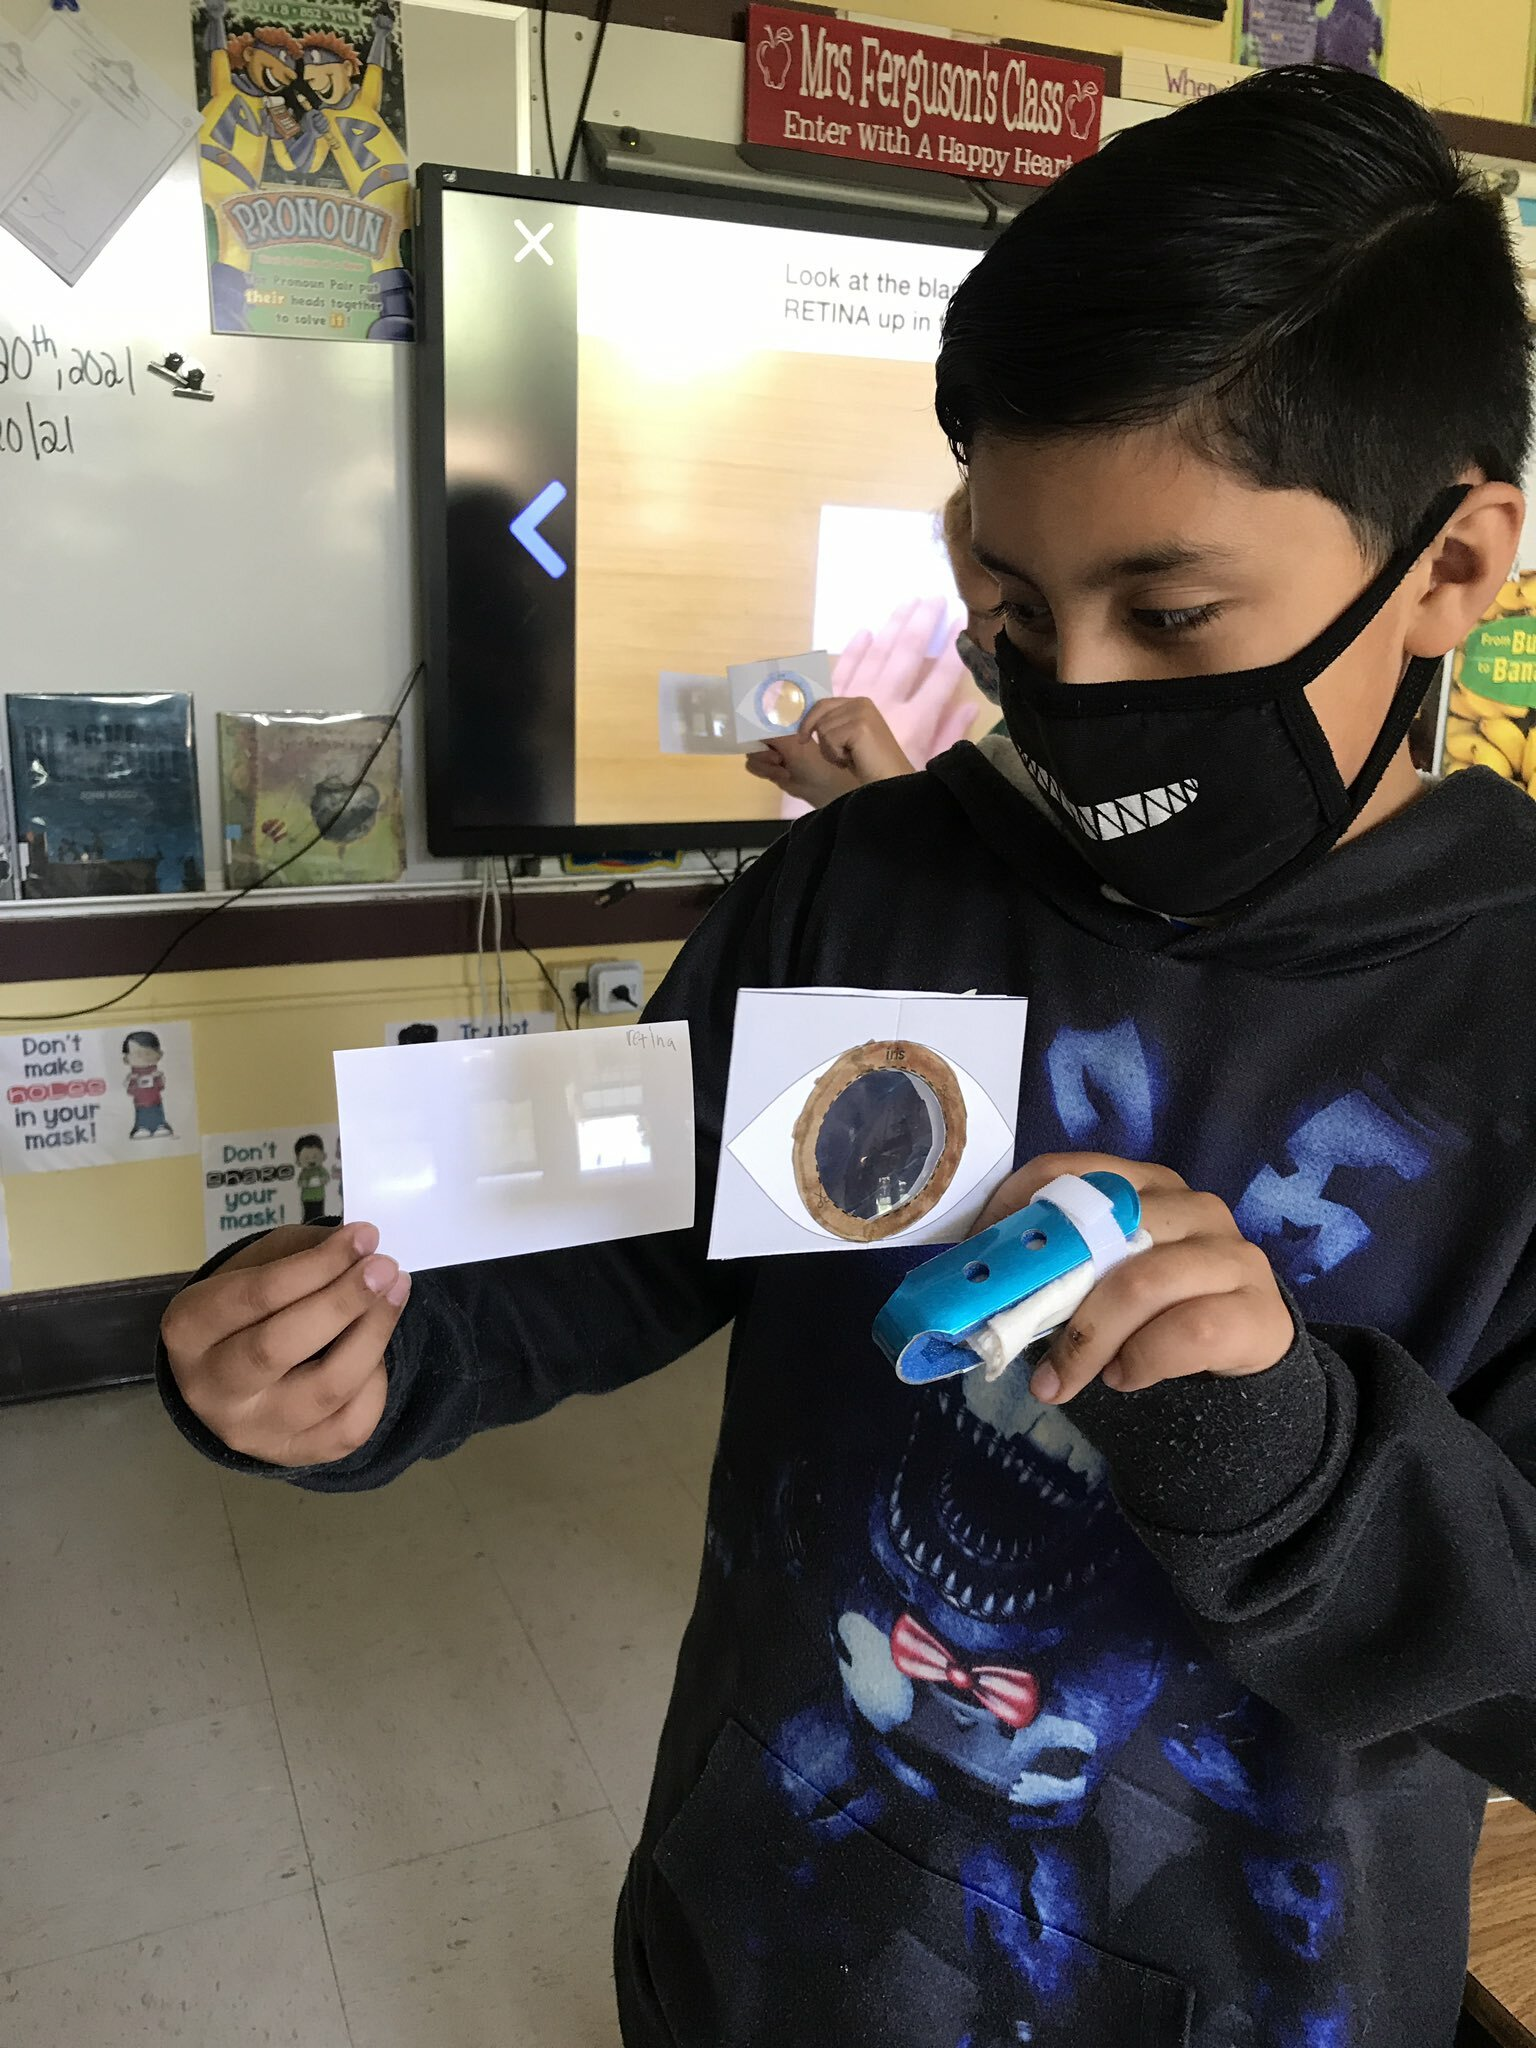 Hampton Bays Elementary School fourth graders explored how eyes work through a science, technology, engineering and math lesson. As part of the STEM unit, the students created model lenses and retinas. They were amazed that they were able to see images refracted from their models.